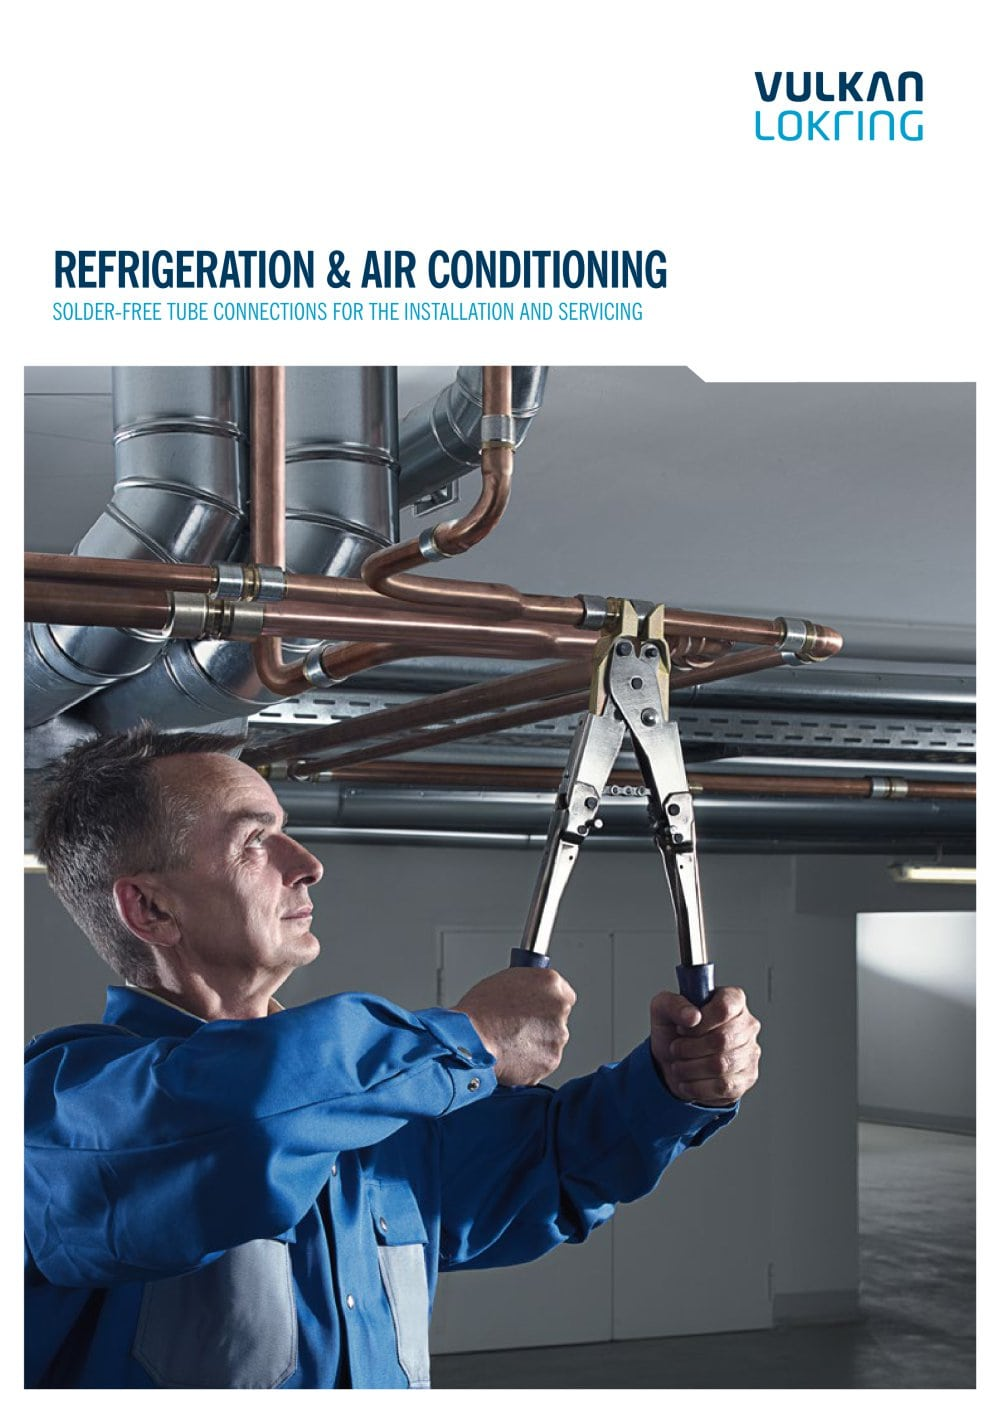 Refrigeration And Air Conditioning Vulkan Kupplungs Pdf Electrical Engineering In 1 62 Pages